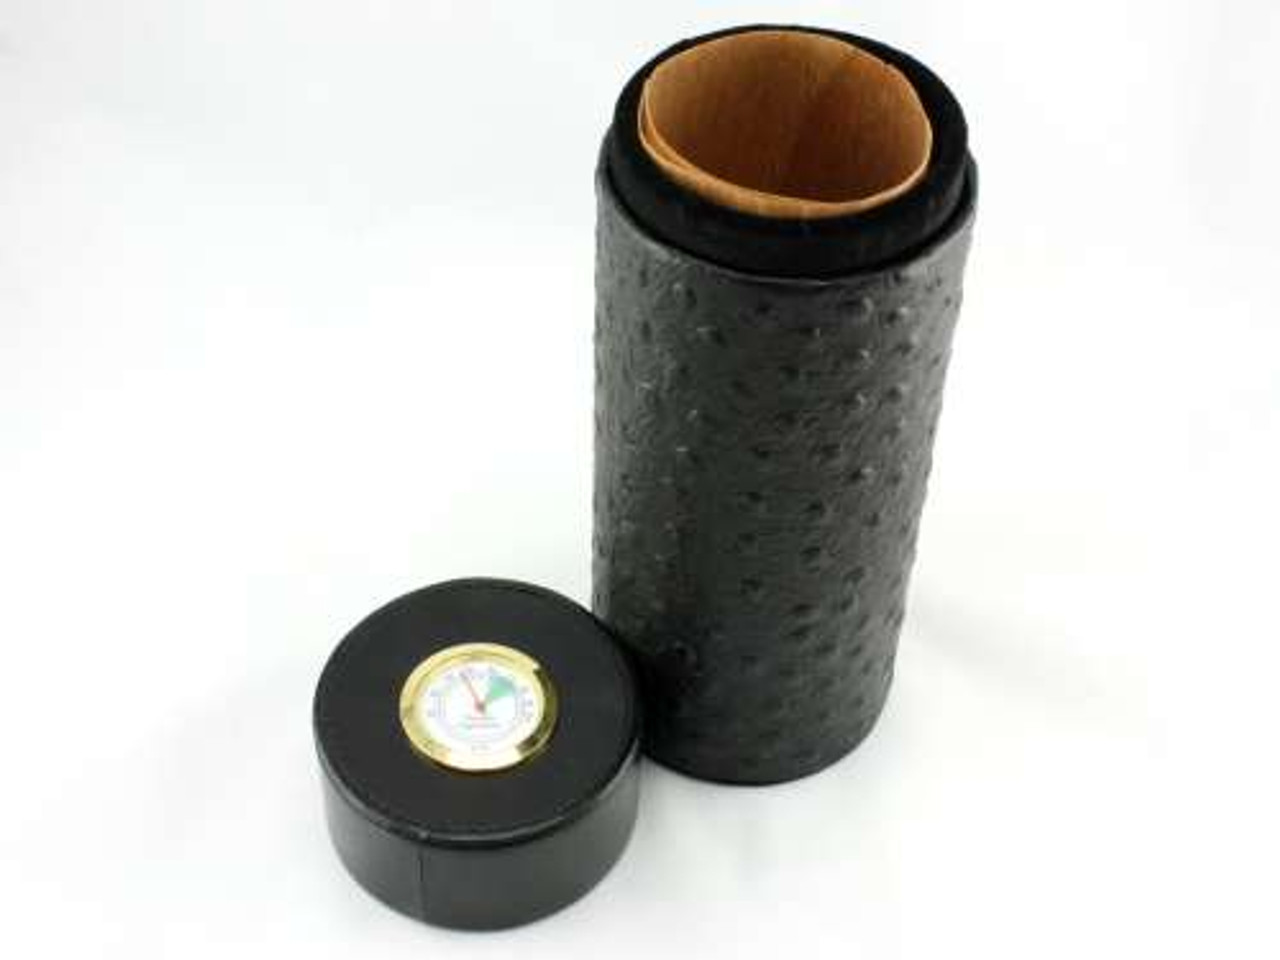 Black Ostrich Infinity Cigar Tube with Hygrometer and Humidifier